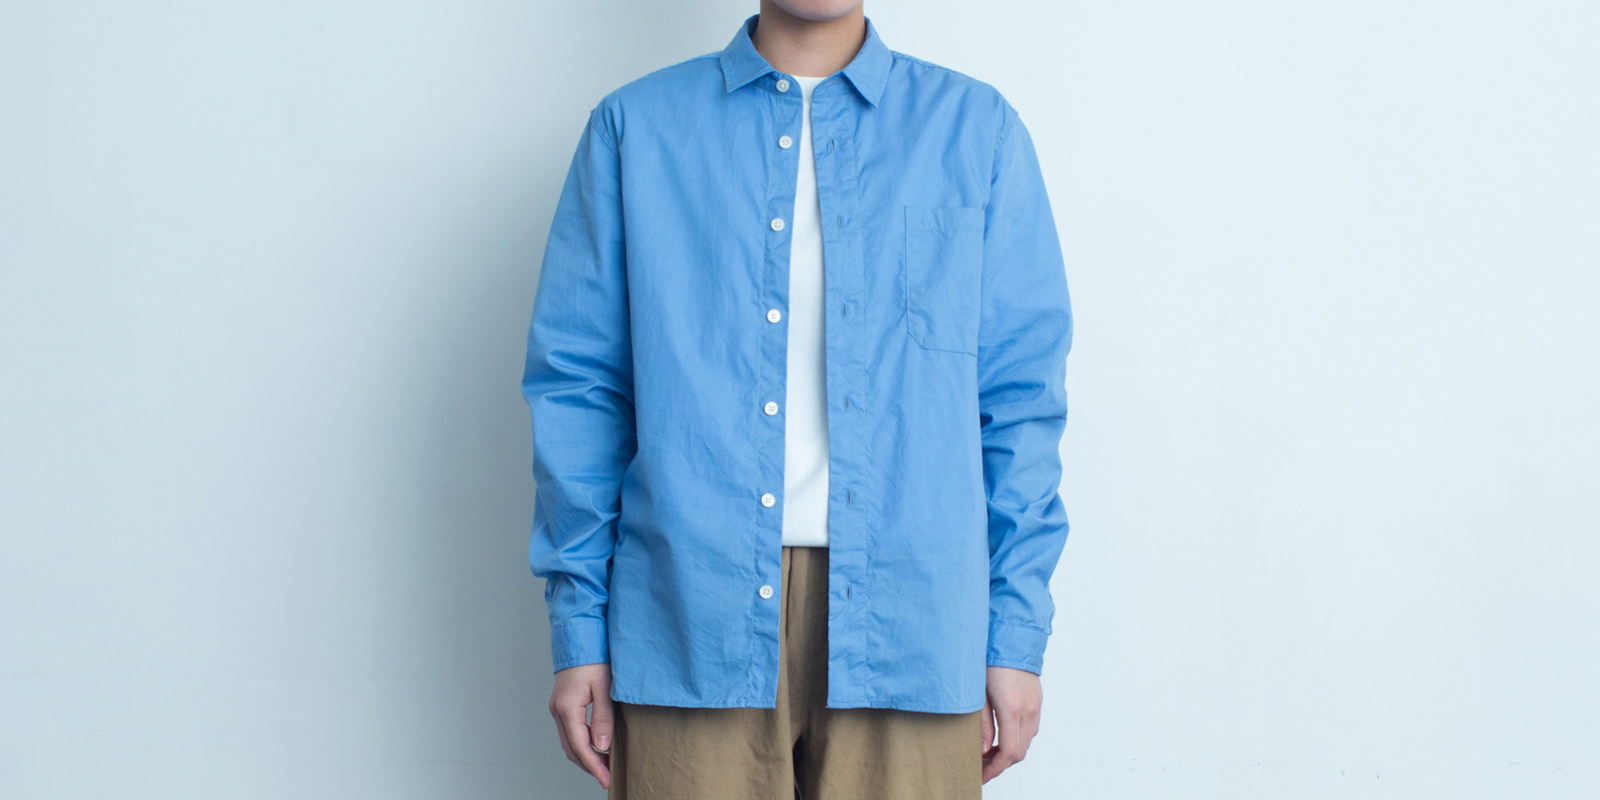 d 205 REGULAR SHIRT・BLUE・M